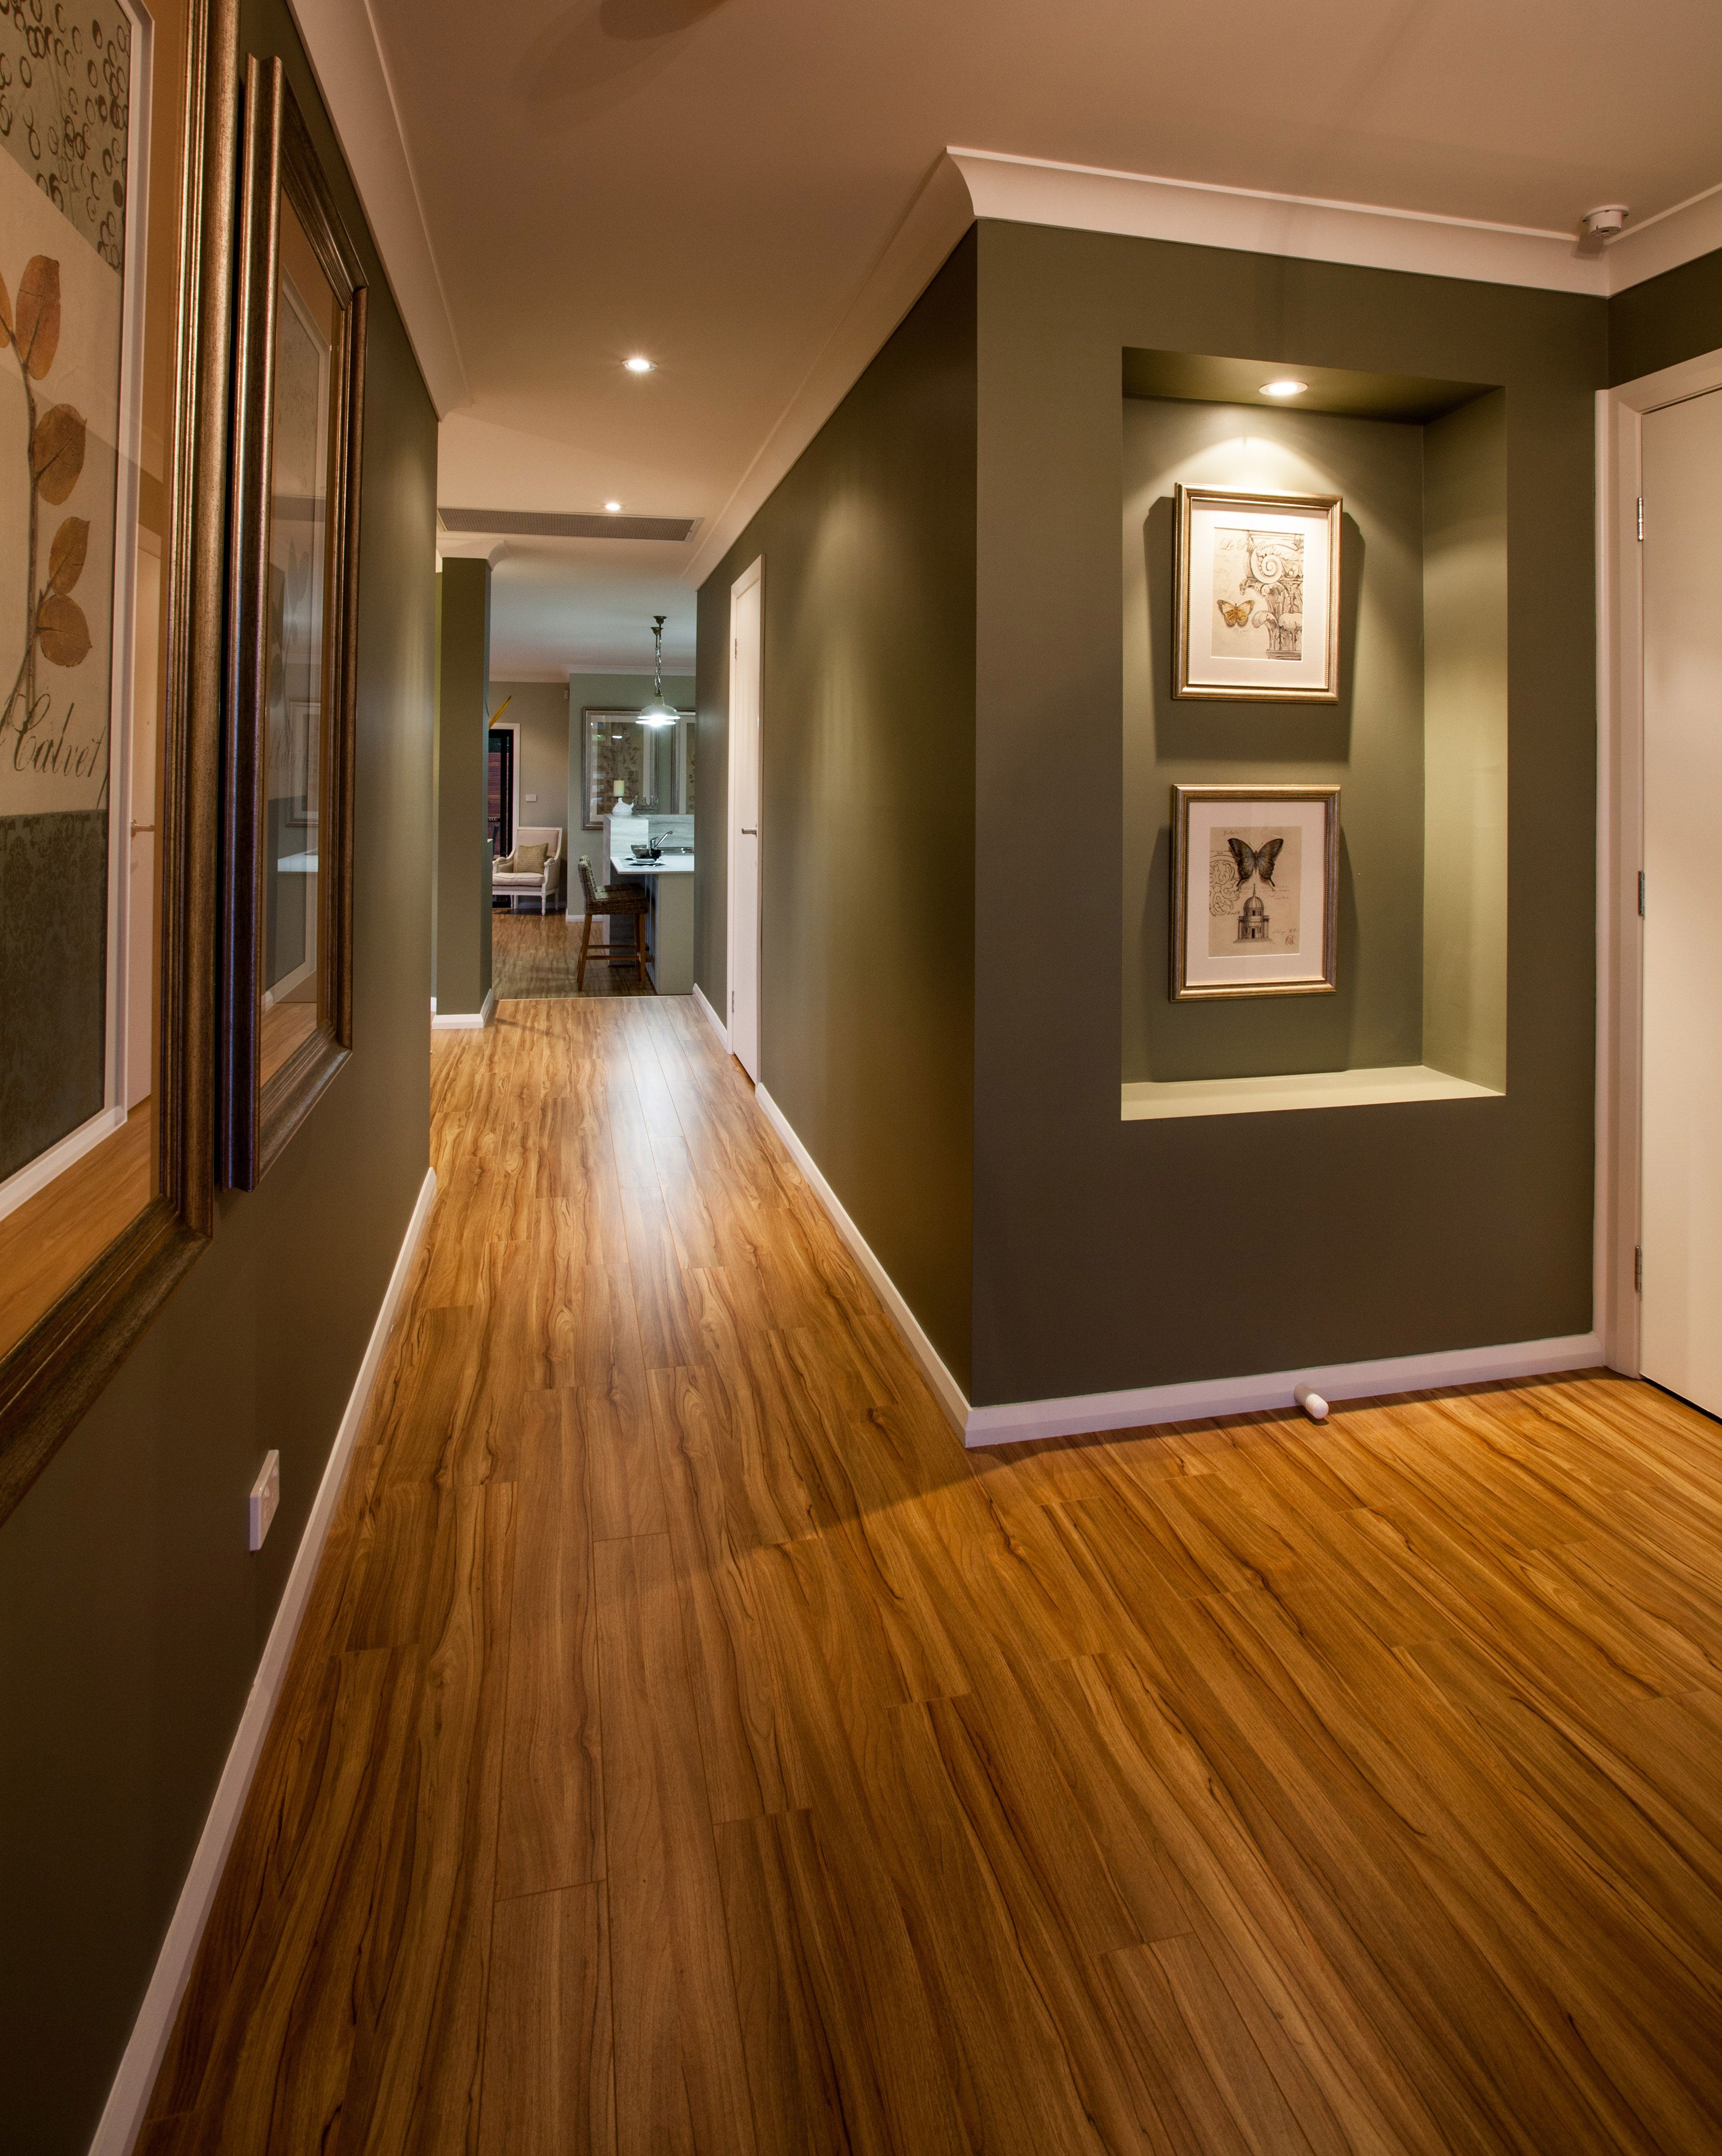 This Hallway Is Full Or Artwork And Recessed Walls With Feature Lights Recessed Lighting Hallway Lighting House Design